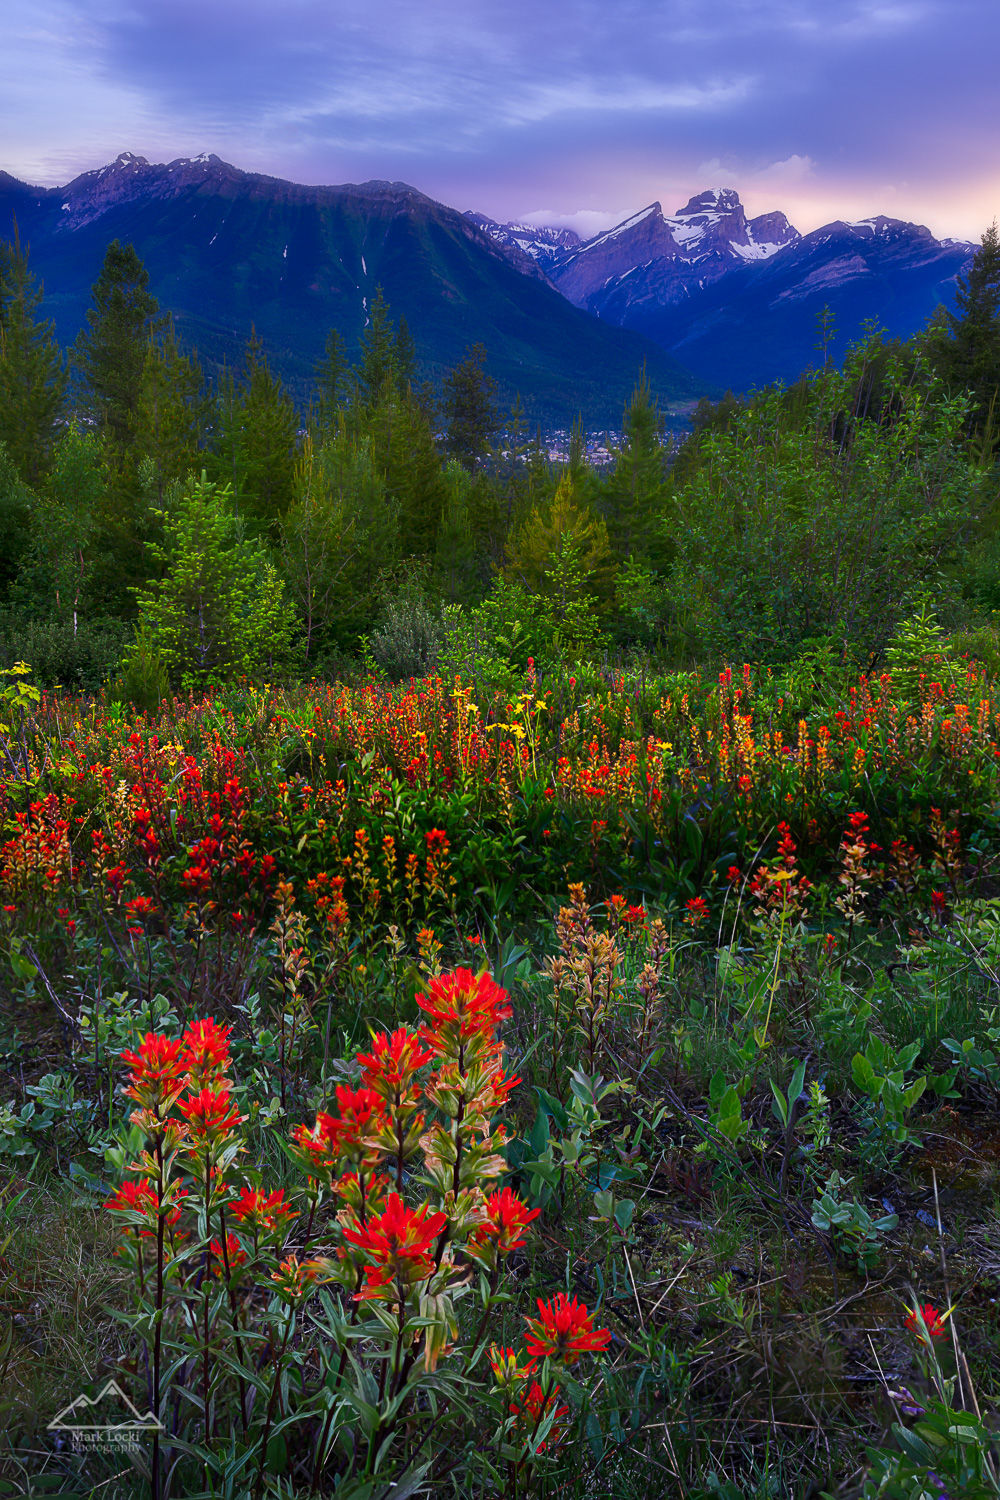 Fernie Wildflowers: This year was amazing for wildflowers around Fernie.  In the 2.5 years I've been here I haven't seen them bloom like they did this year.  I found this spot on a quick drive of the forestry roads around Fernie, and it took me 3 trips to this spot until I found the lighting that I liked